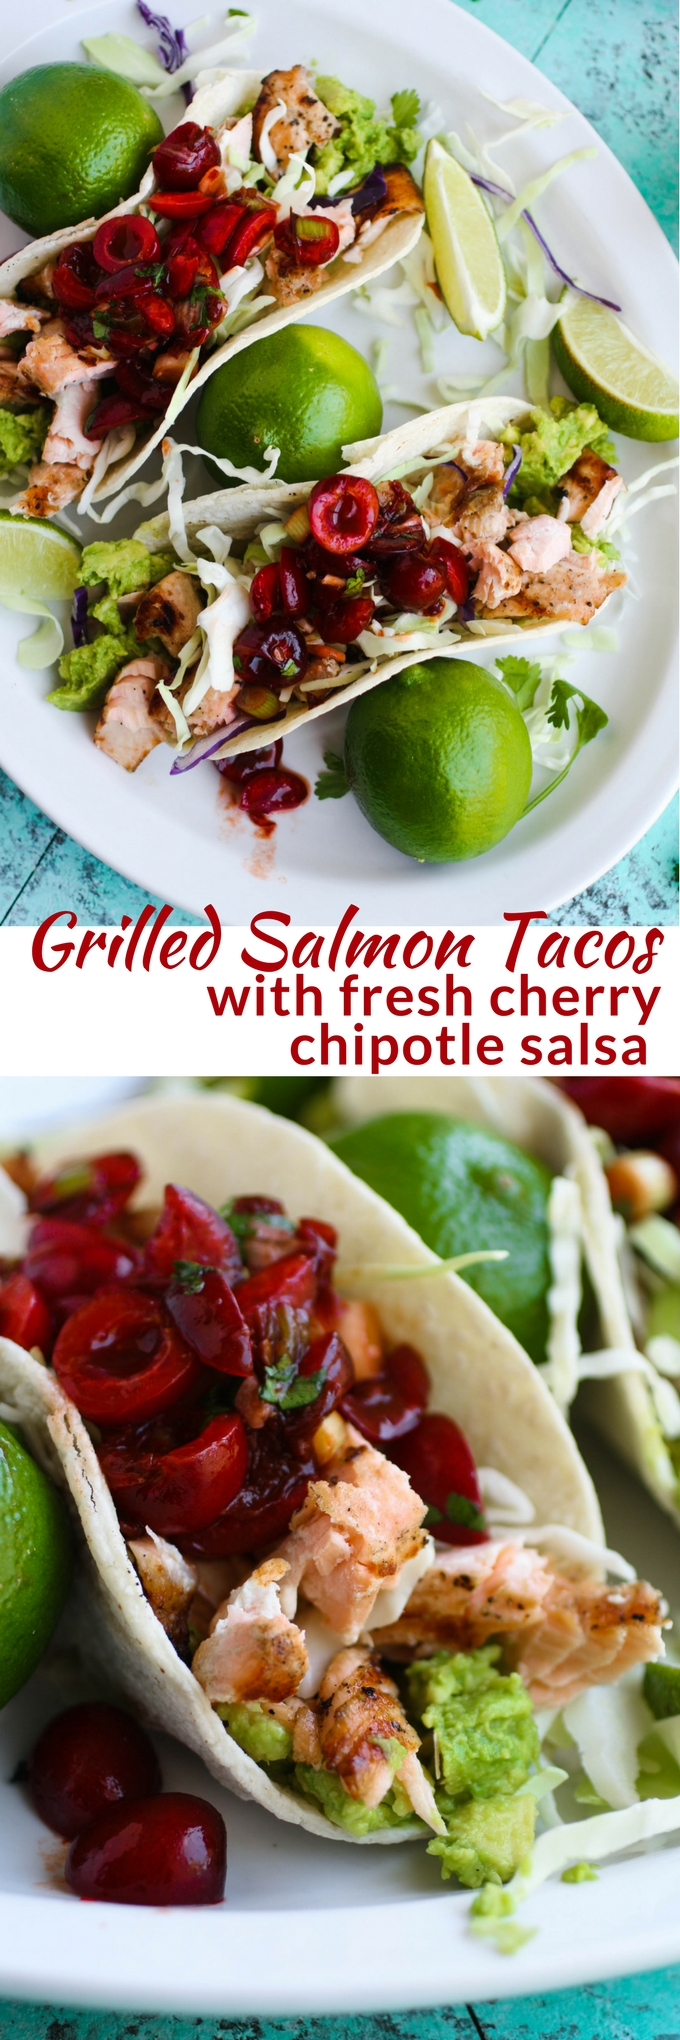 Grilled Salmon Tacos with Fresh Cherry-Chipotle Salsa is a great summer dish. It may become your favorite tacos and salsa to serve!